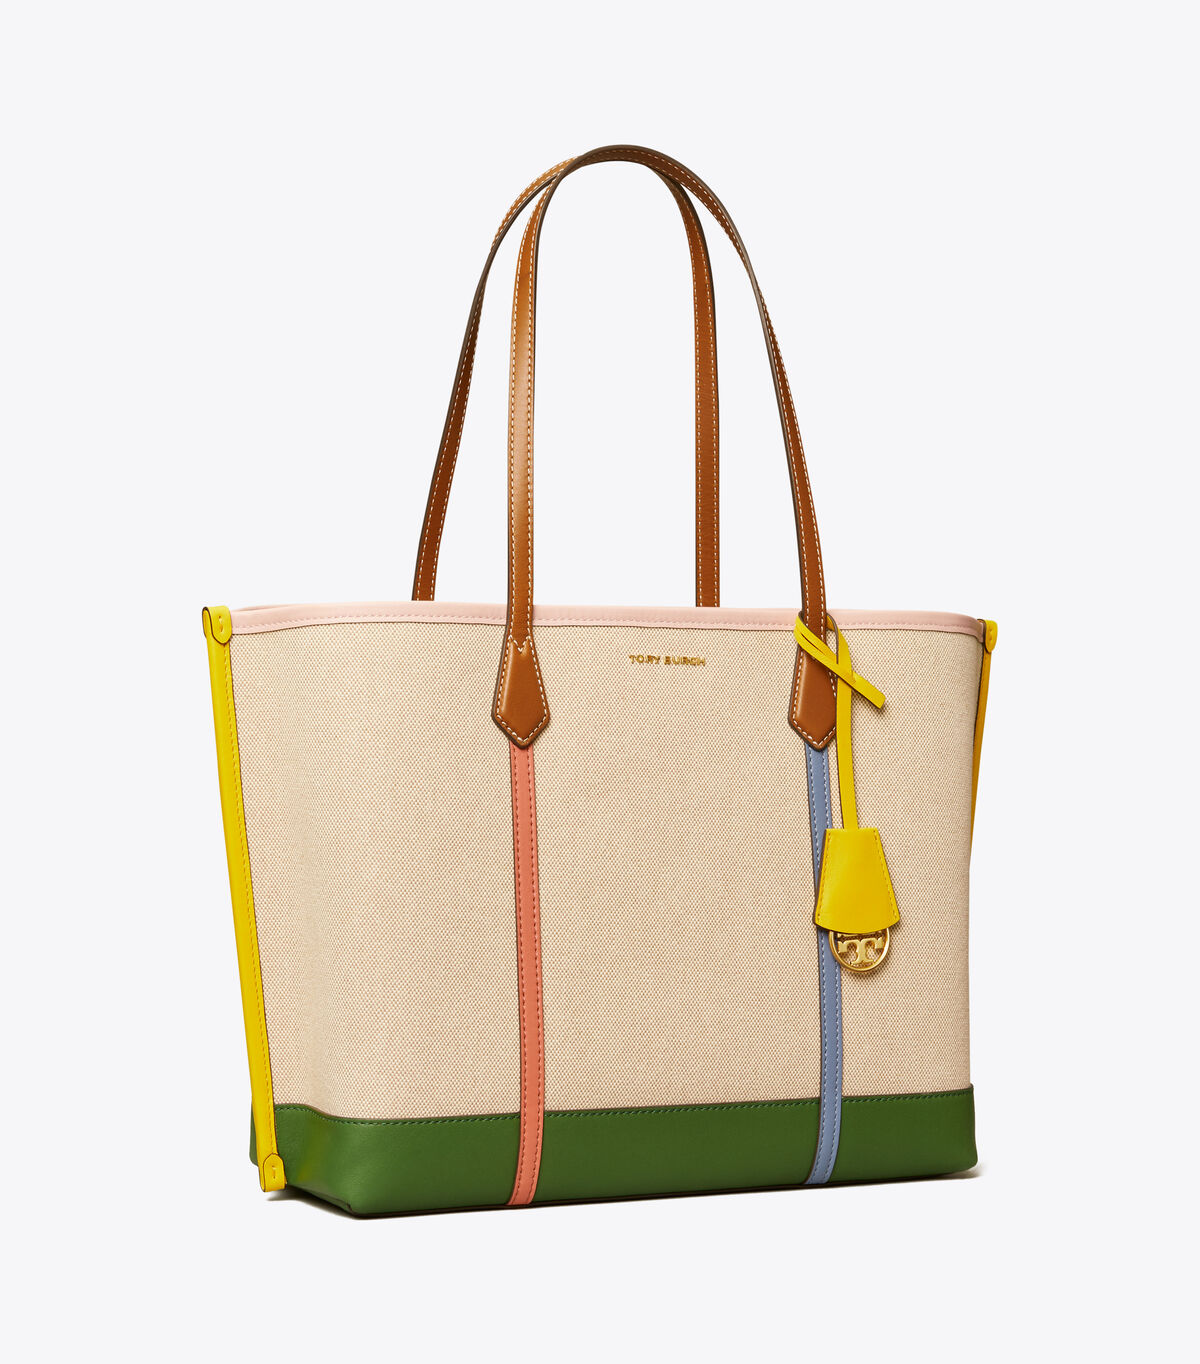 PERRY CANVAS TRIPLE-COMPARTMENT TOTE   254   Totes